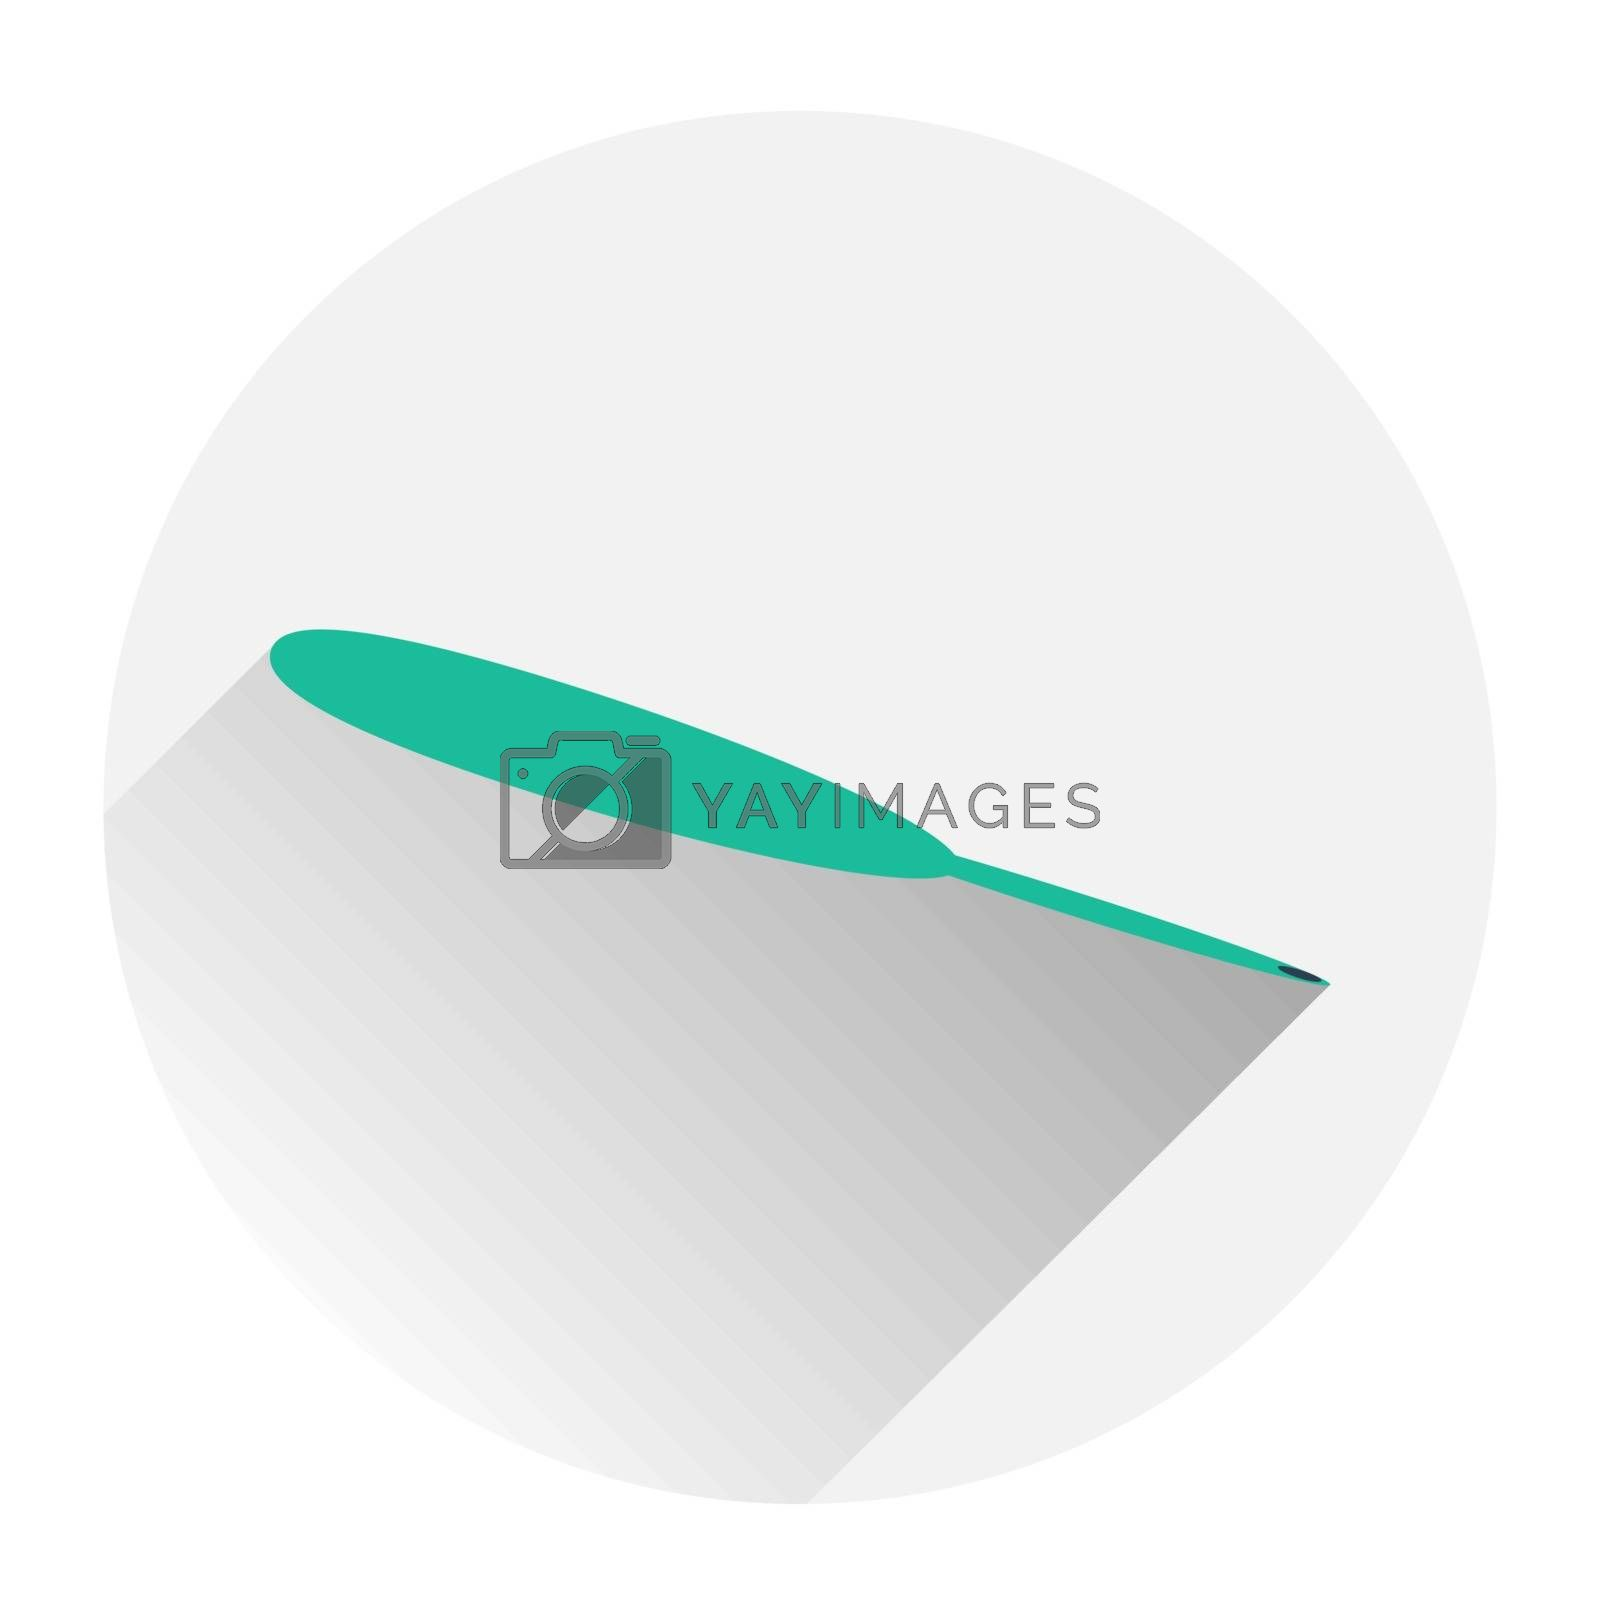 Steel dental surgical forceps icon. Flat illustration of steel surgical forceps vector icon for web isolated on grey background